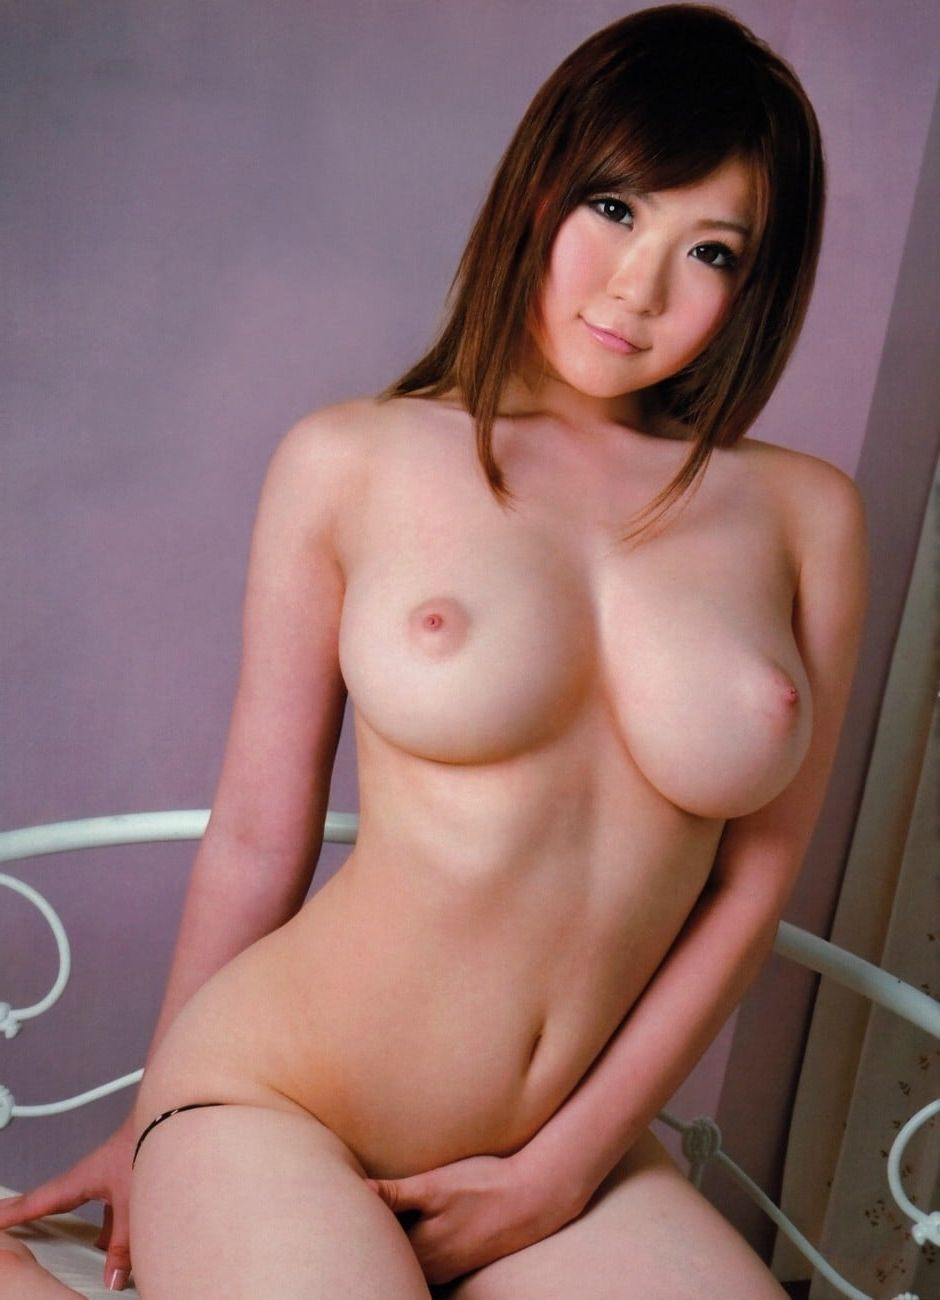 Recommend hottest asian porn star